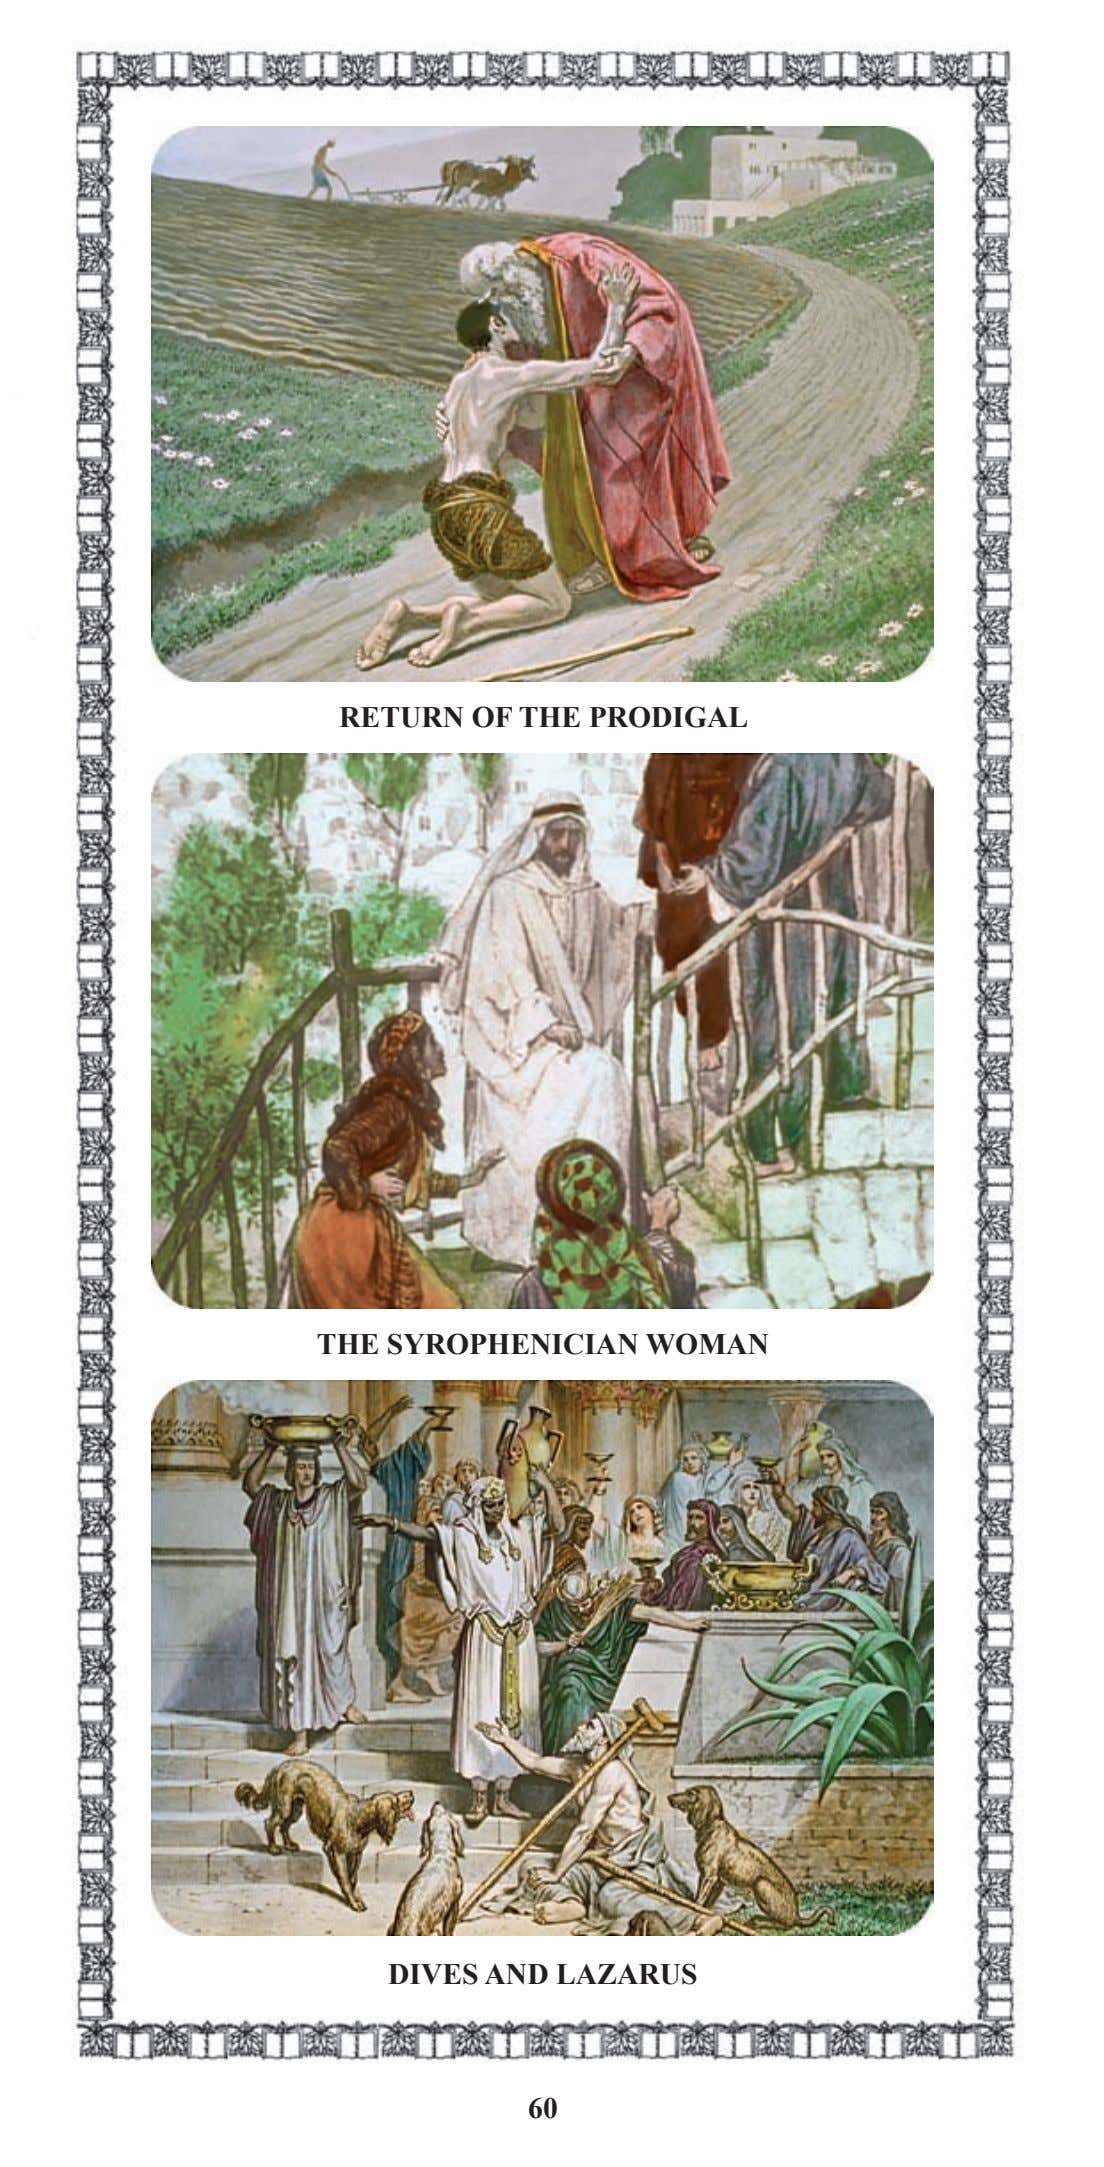 RETURN OF THE PRODIGAL THE SYROPHENICIAN WOMAN DIVES AND LAZARUS 60